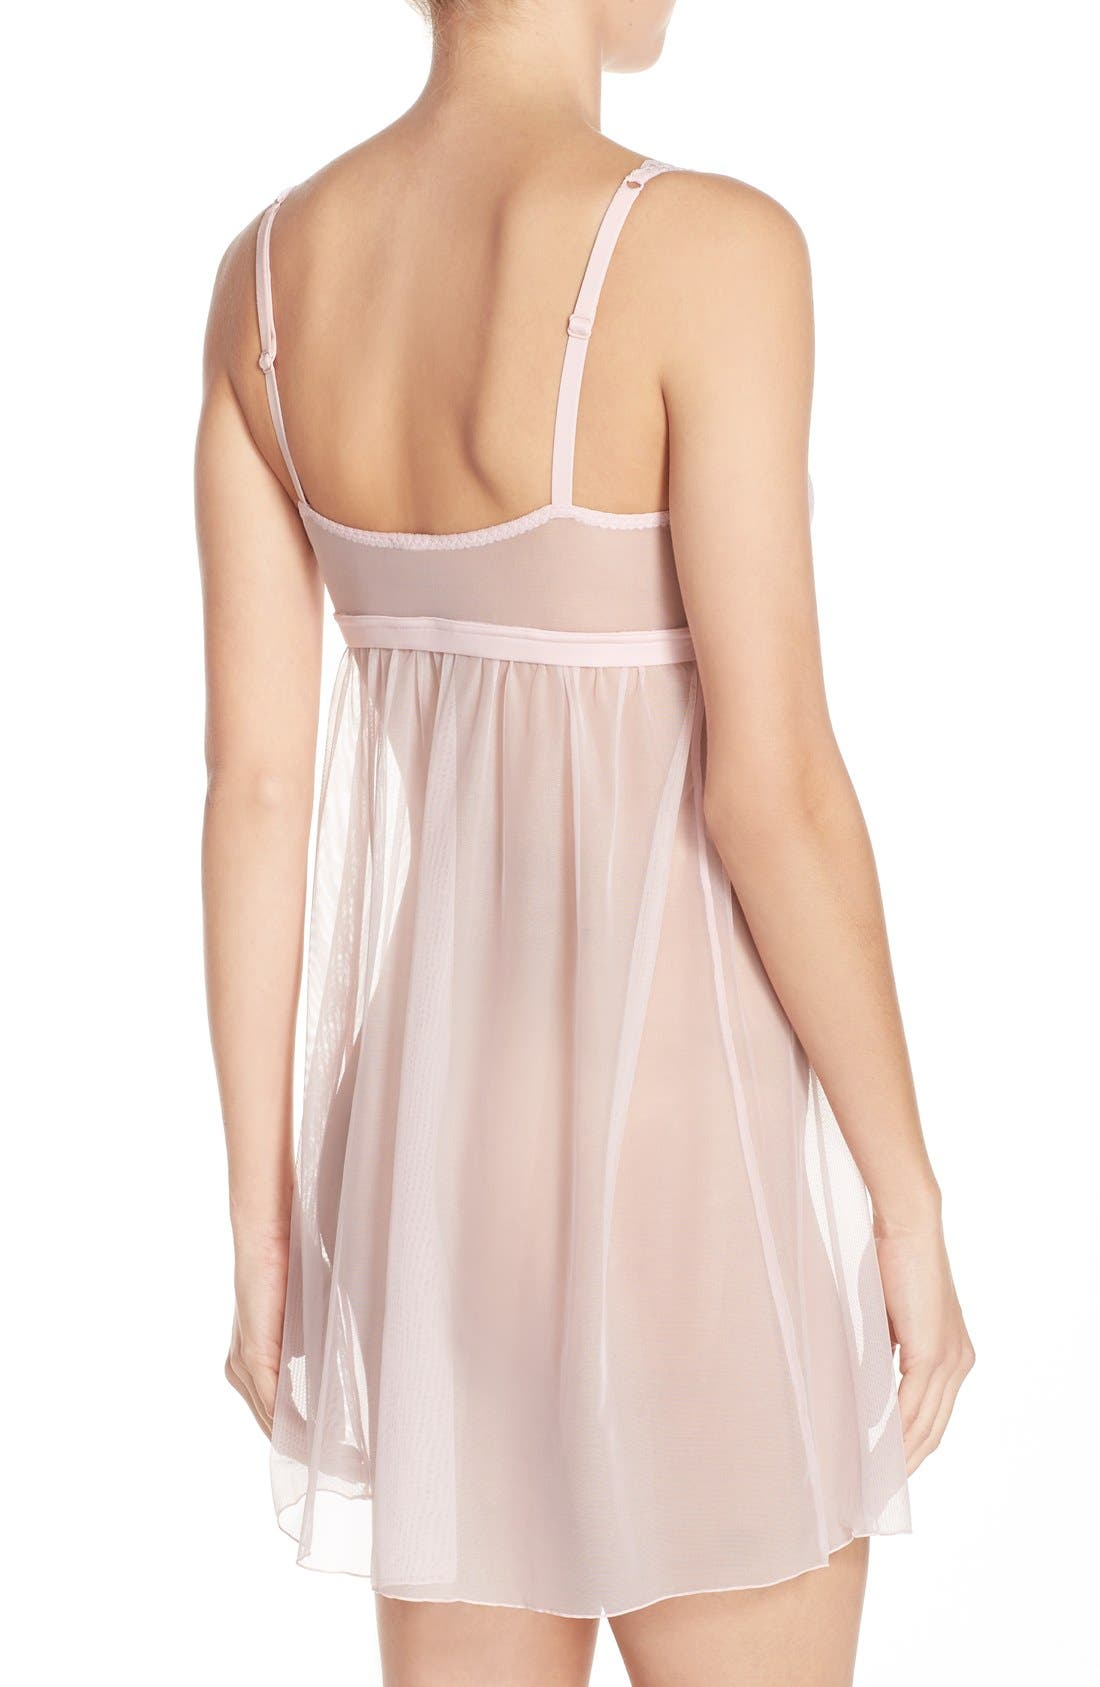 'Minoa' Babydoll Chemise,                             Alternate thumbnail 2, color,                             Pink Lilly